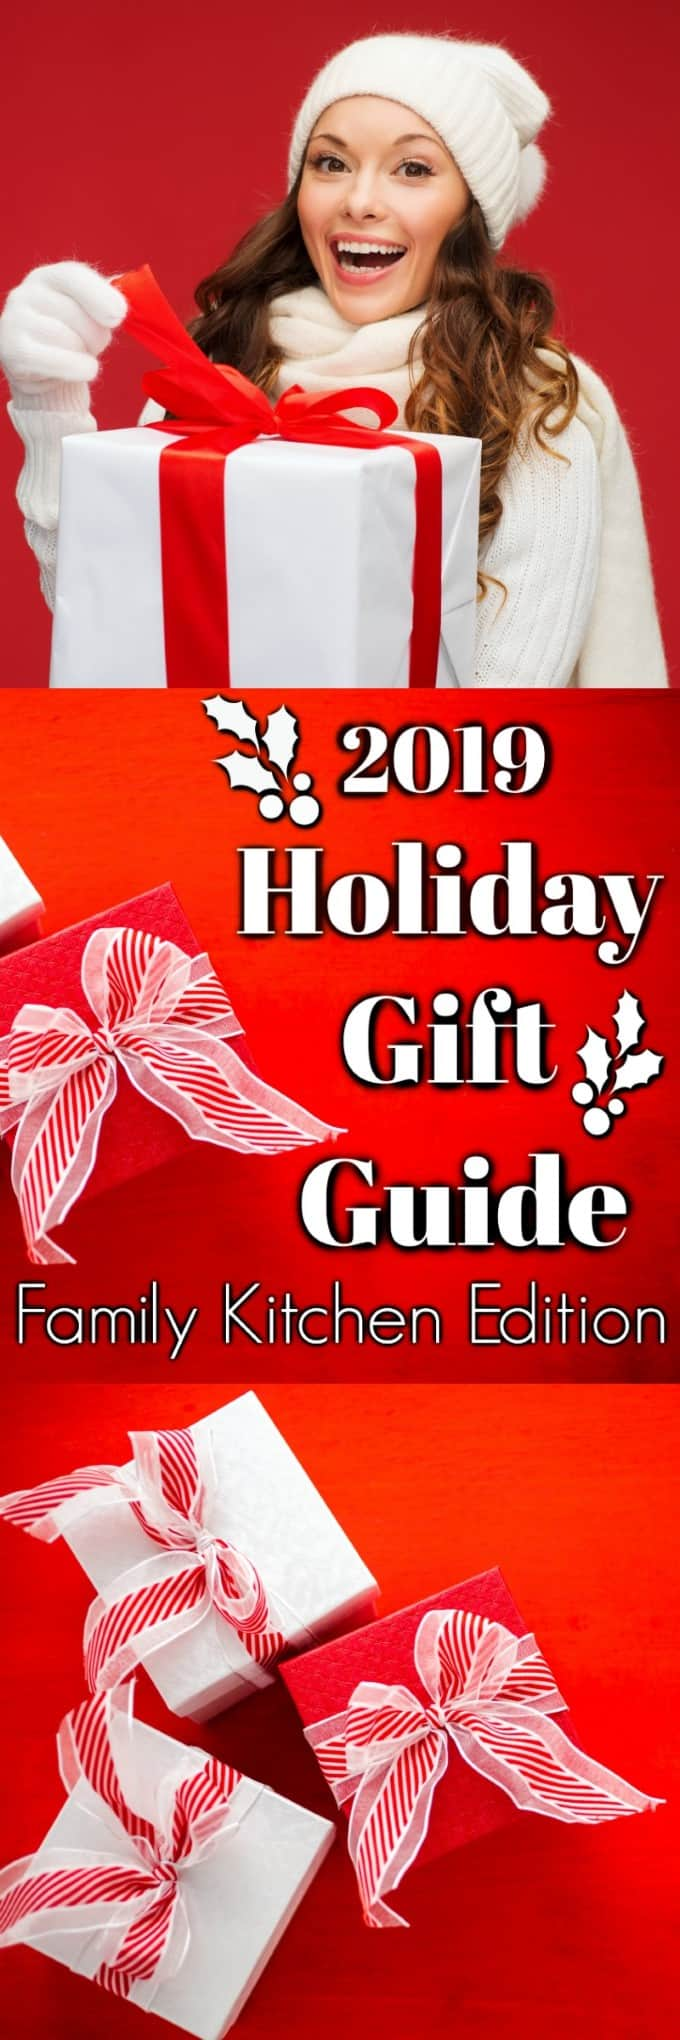 Our 2019 Holiday Gift Guide - Family Kitchen Edition will sure to please everyone!! #giftgiving #holidaygifts #Christmas